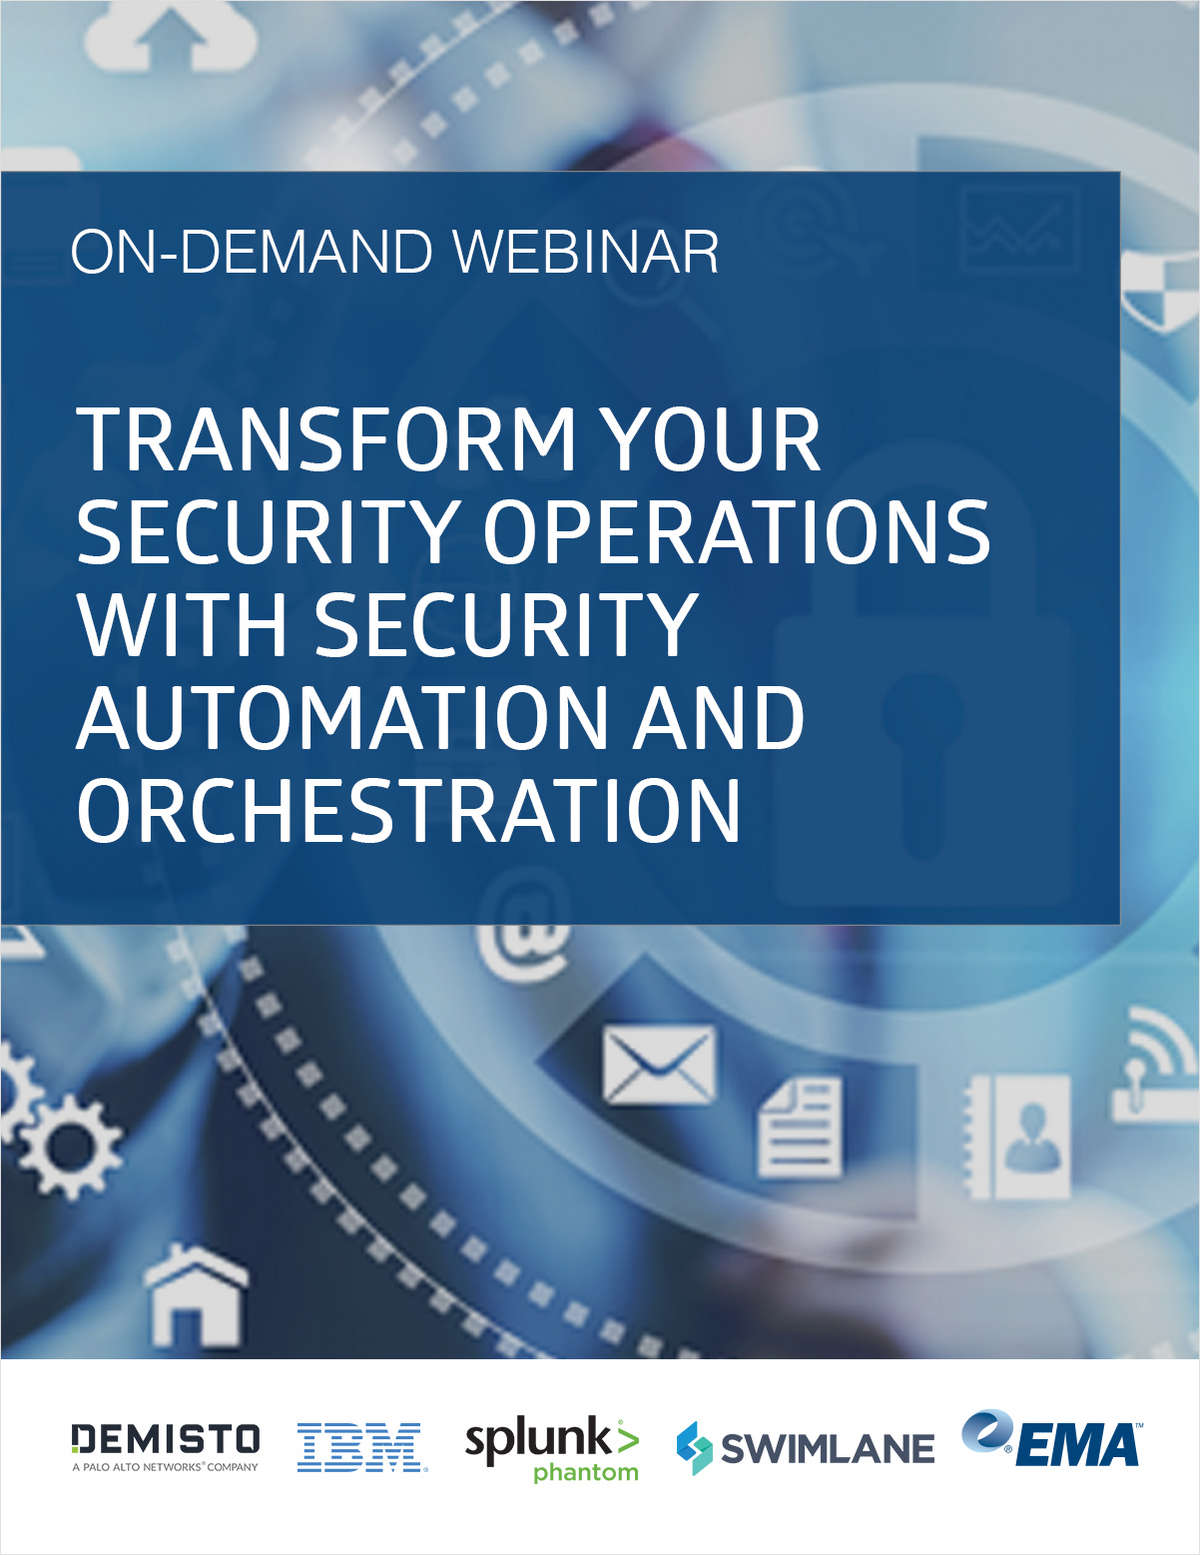 On-Demand Webinar: Transform Your Security Operations with Security Automation and Orchestration